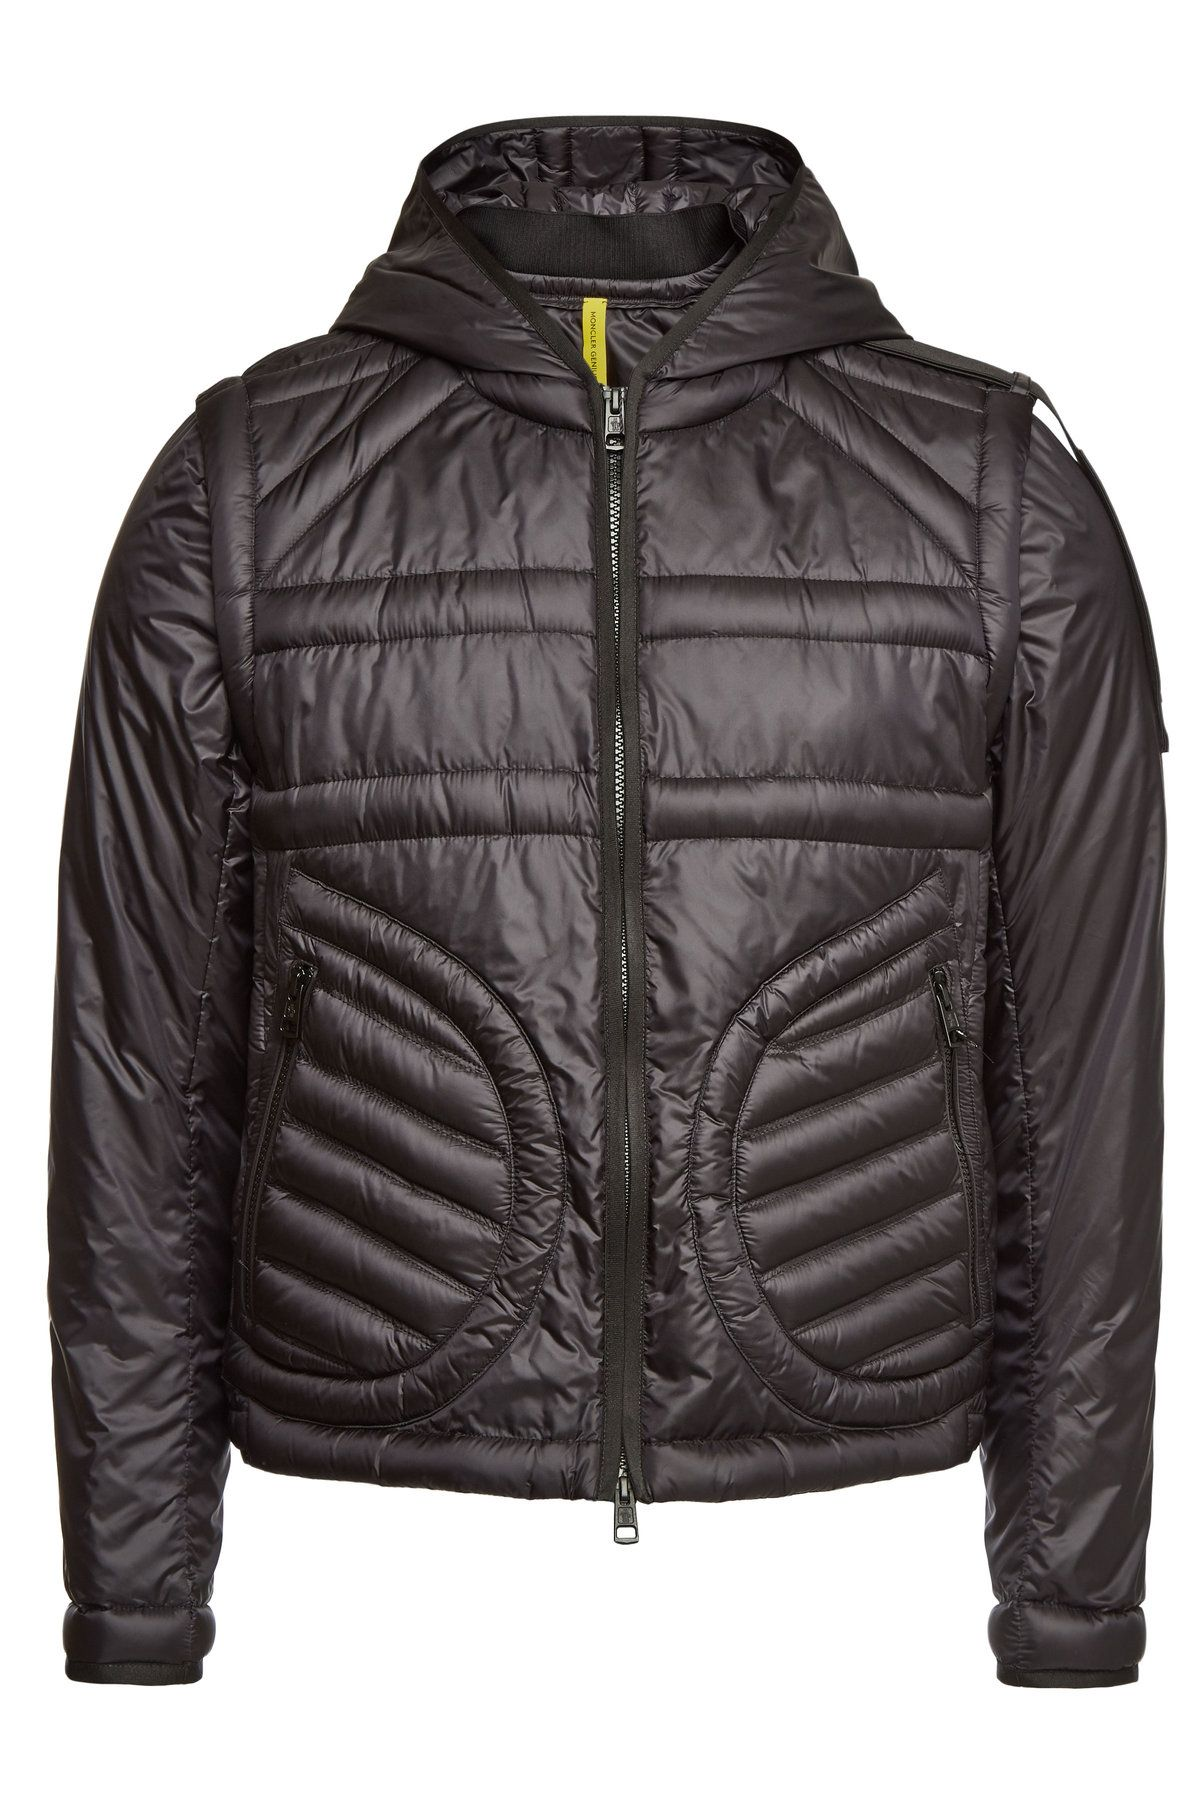 Moncler Genius 5 Moncler Craig Green Apex Quilted Down Jacket With Hood Monclergenius Cloth Down Jacket Hooded Jacket Moncler